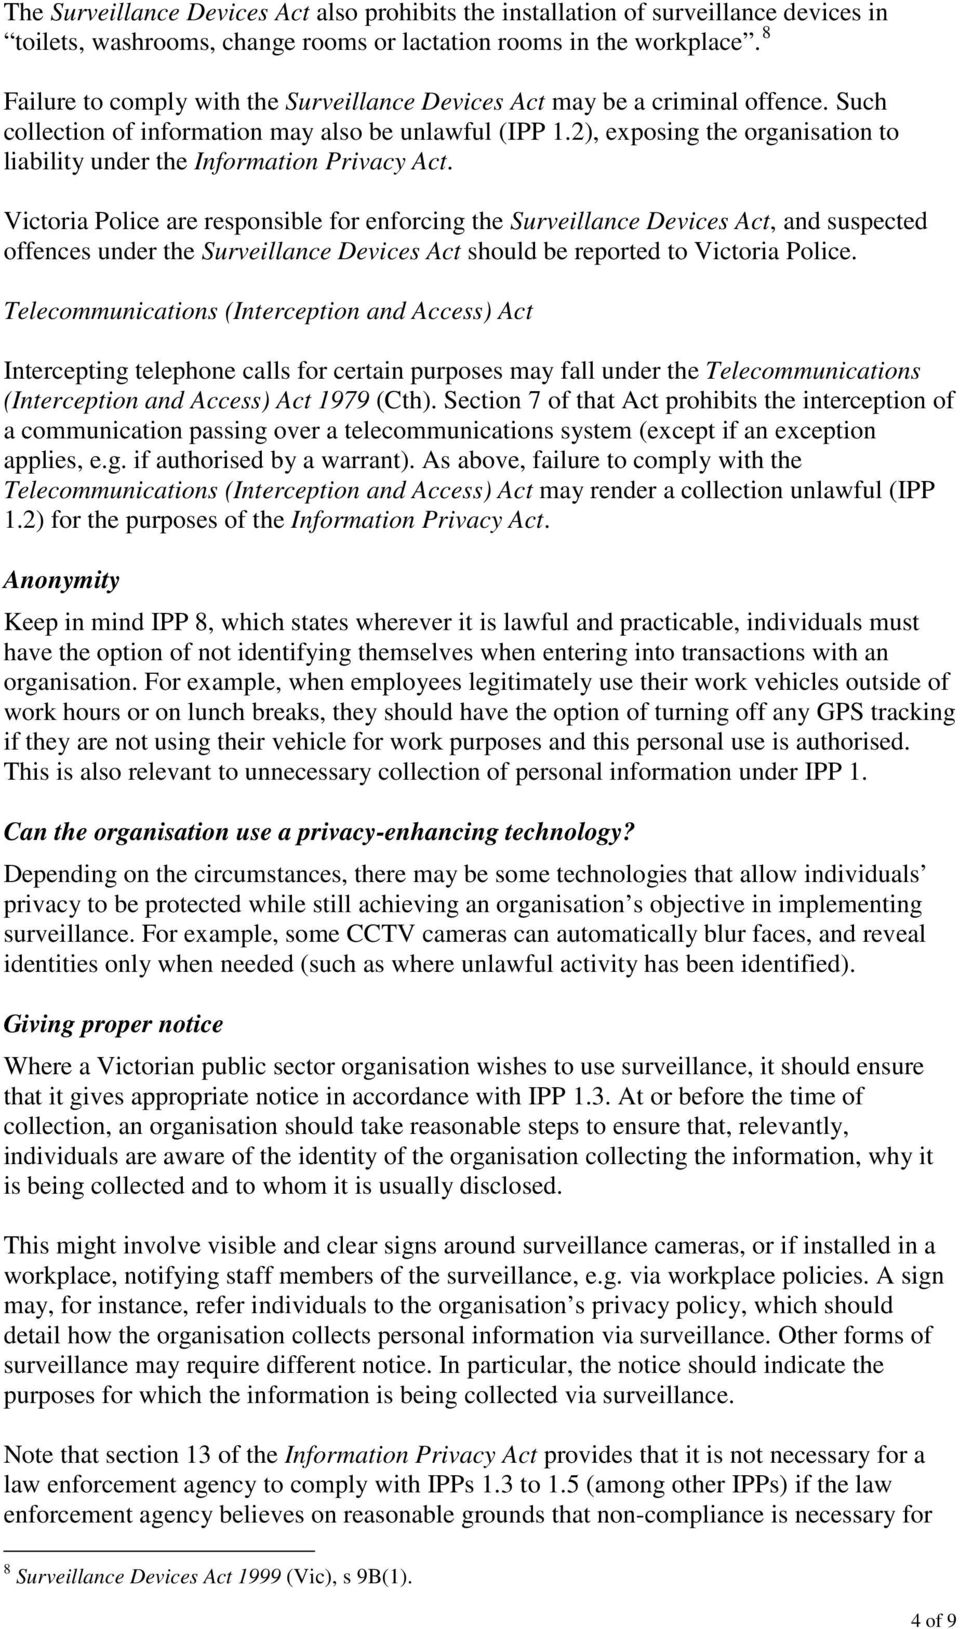 2), exposing the organisation to liability under the Information Privacy Act.